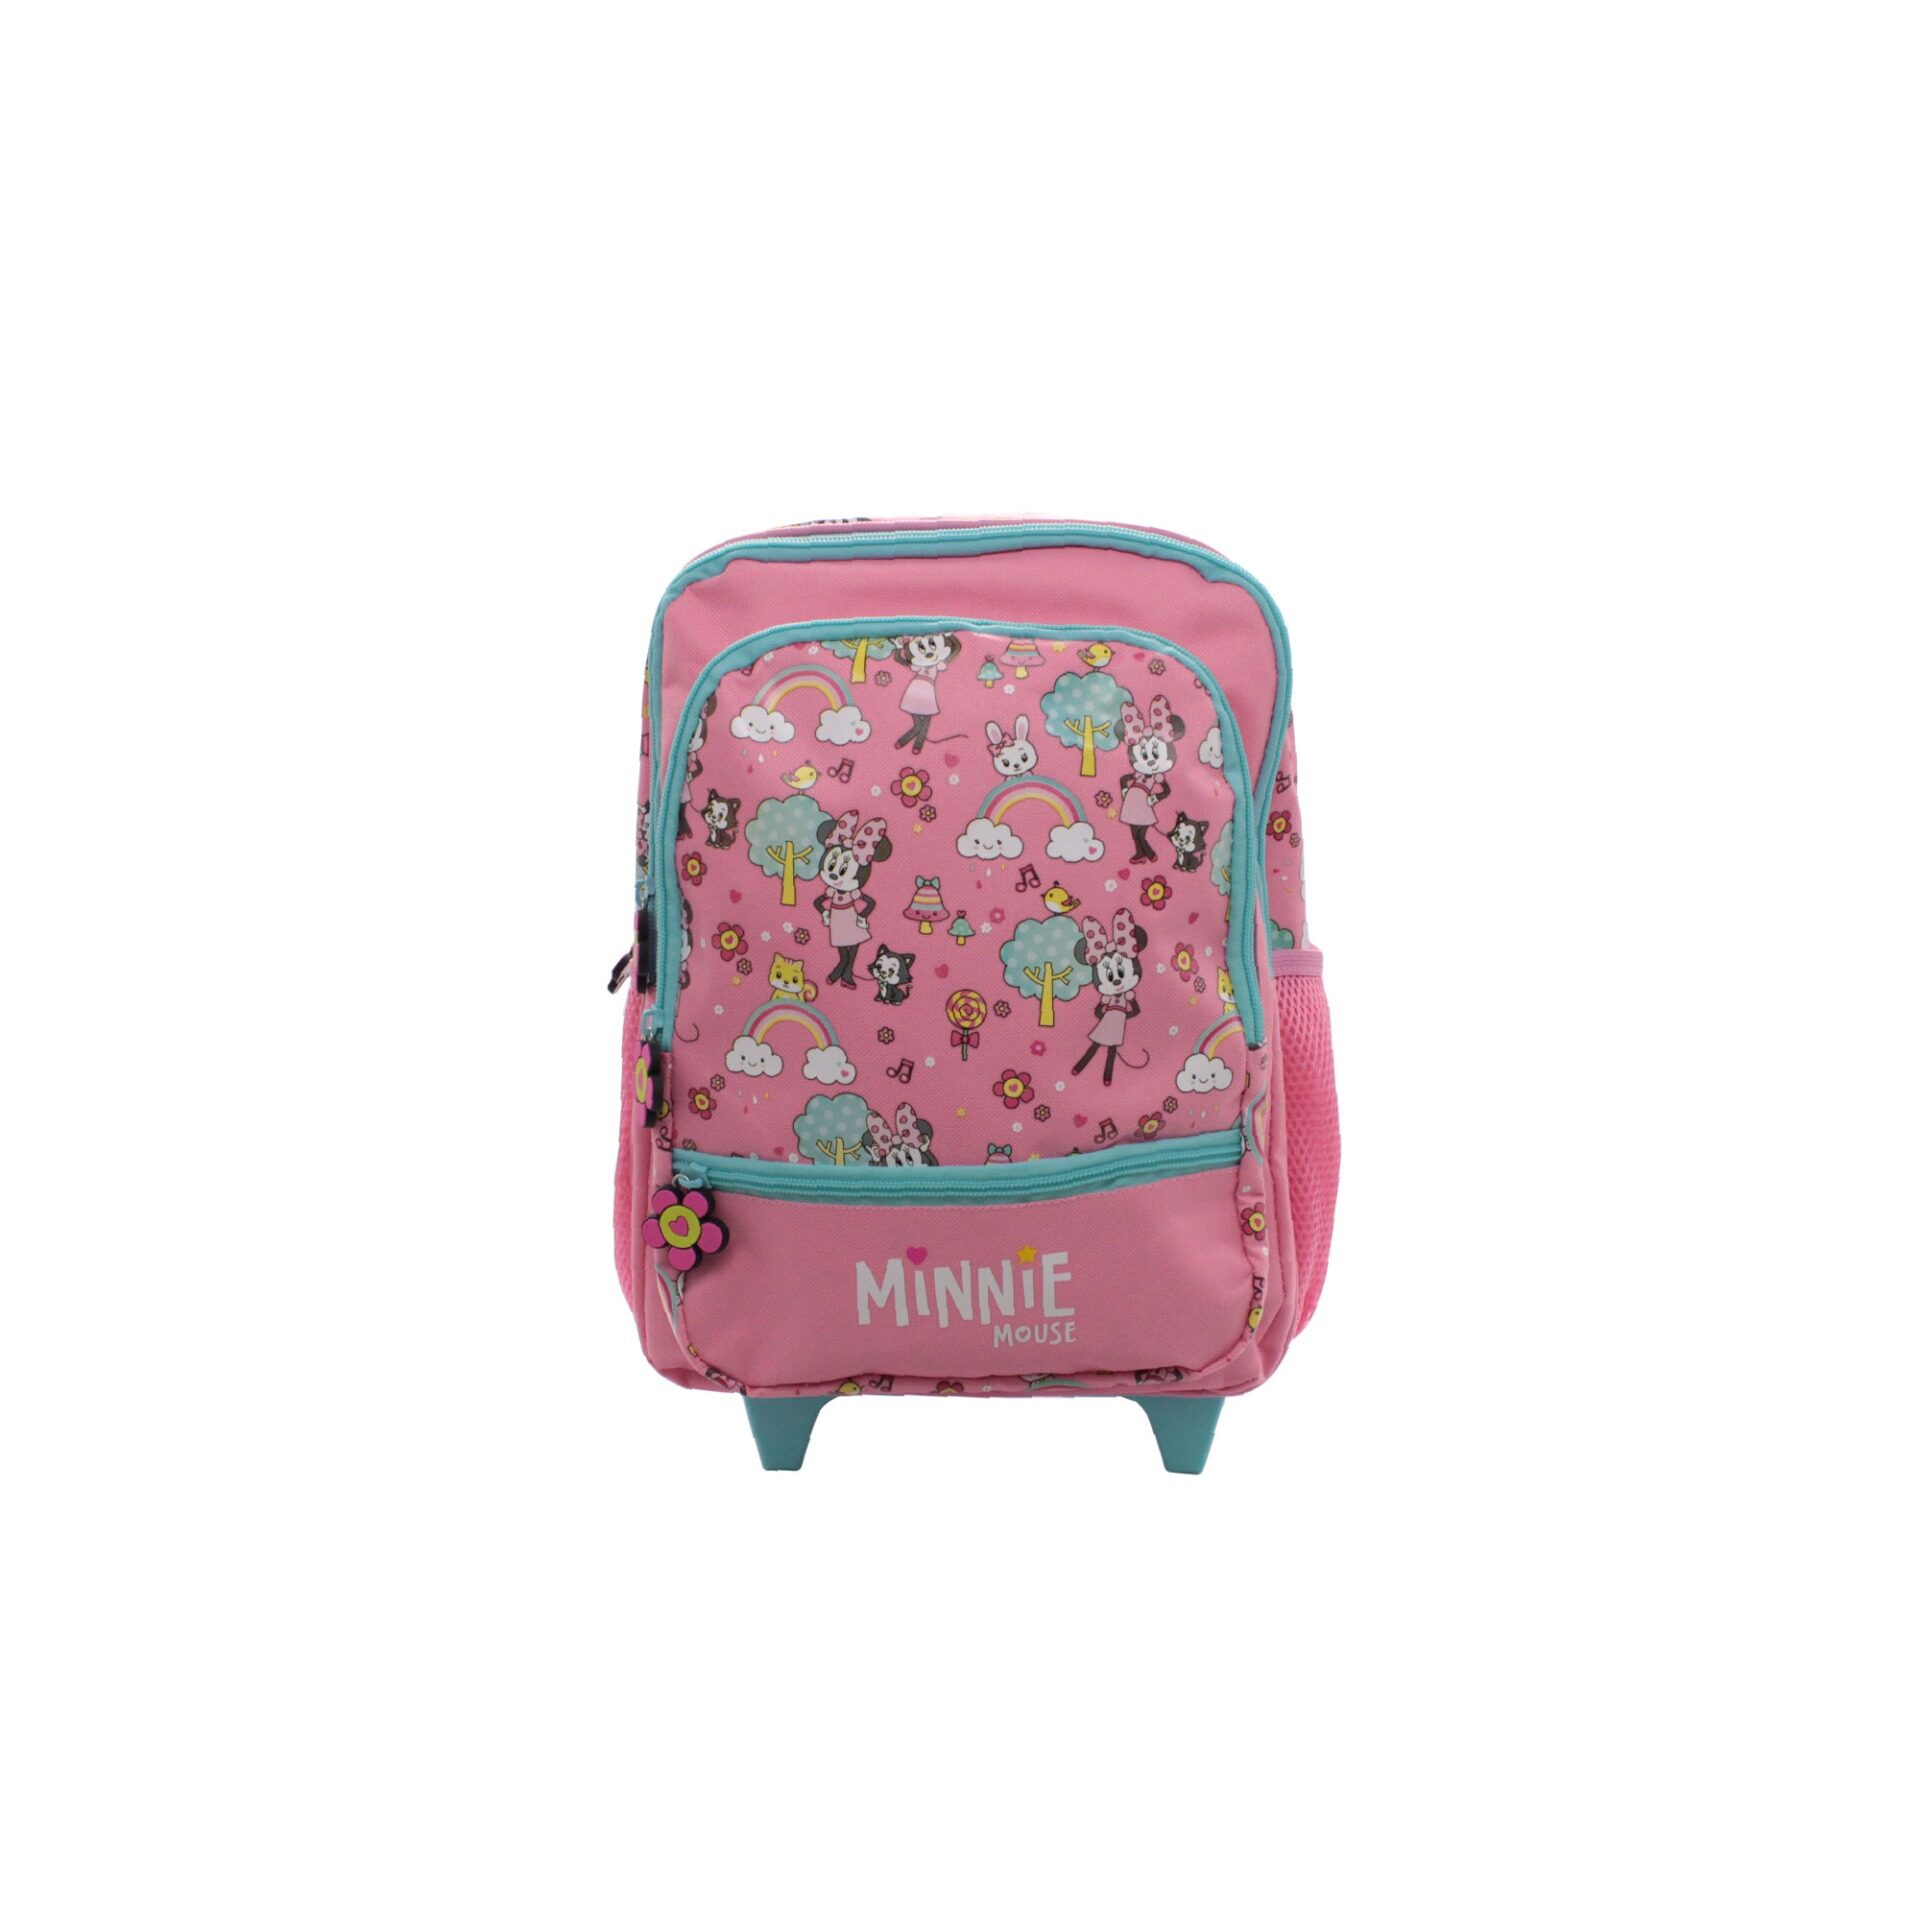 Disney Minnie Mouse Rainbow & Candies For Kids Girls Pre-School Trolley Bag With 2 Wheels & Handle (Pink)